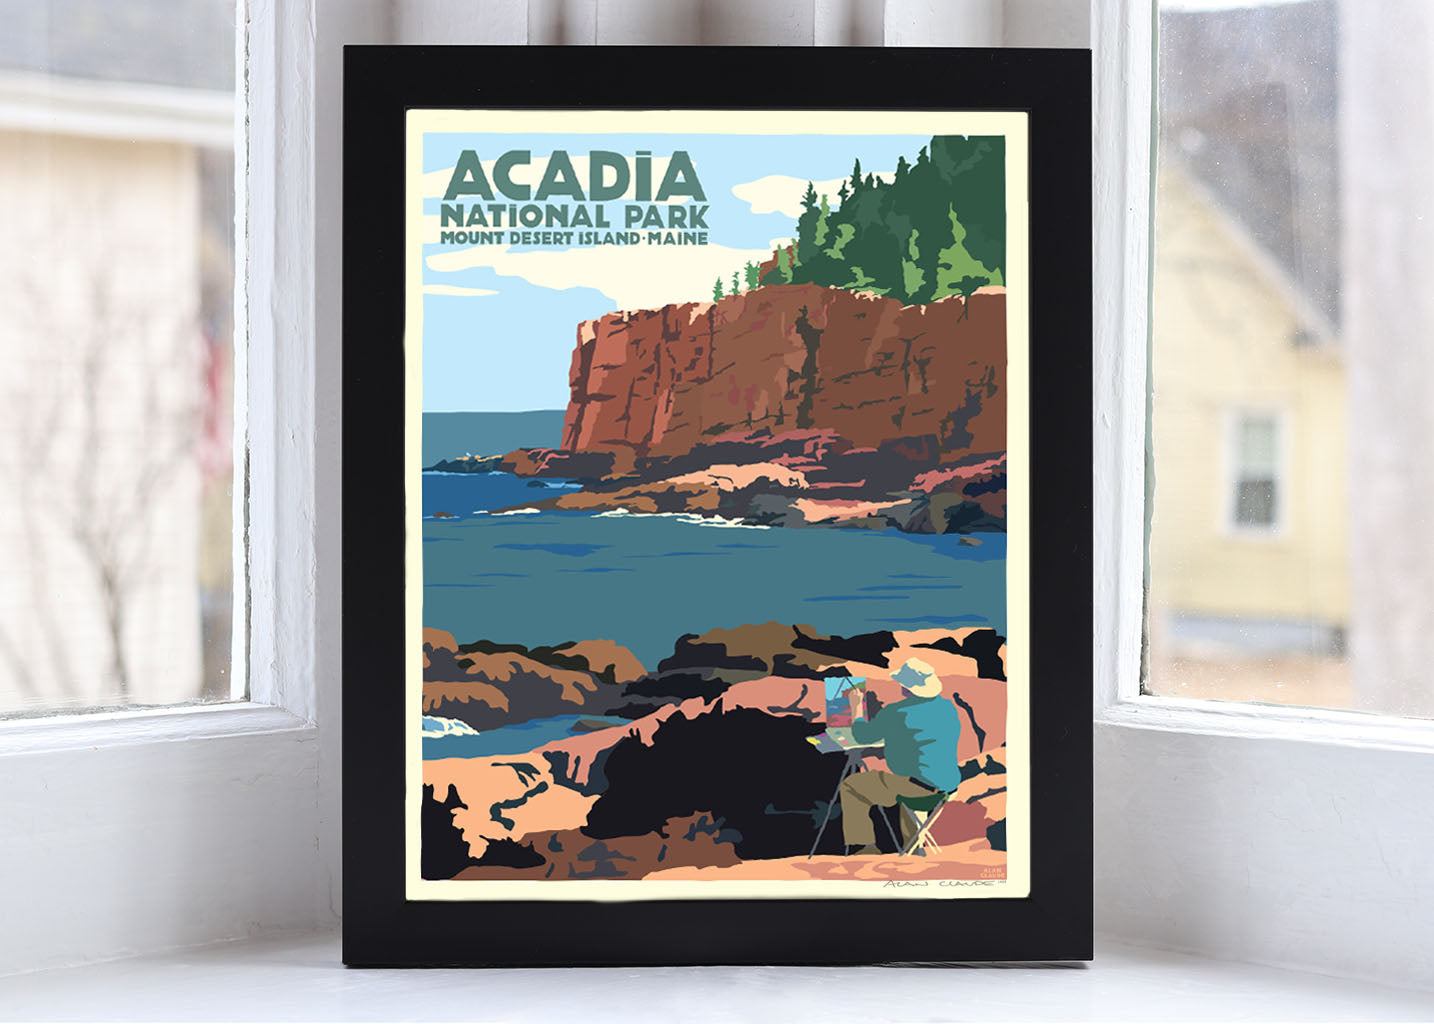 Painting In Acadia National Park Art Print 8 X 10 Framed Wall Poster Alan Claude Gallery